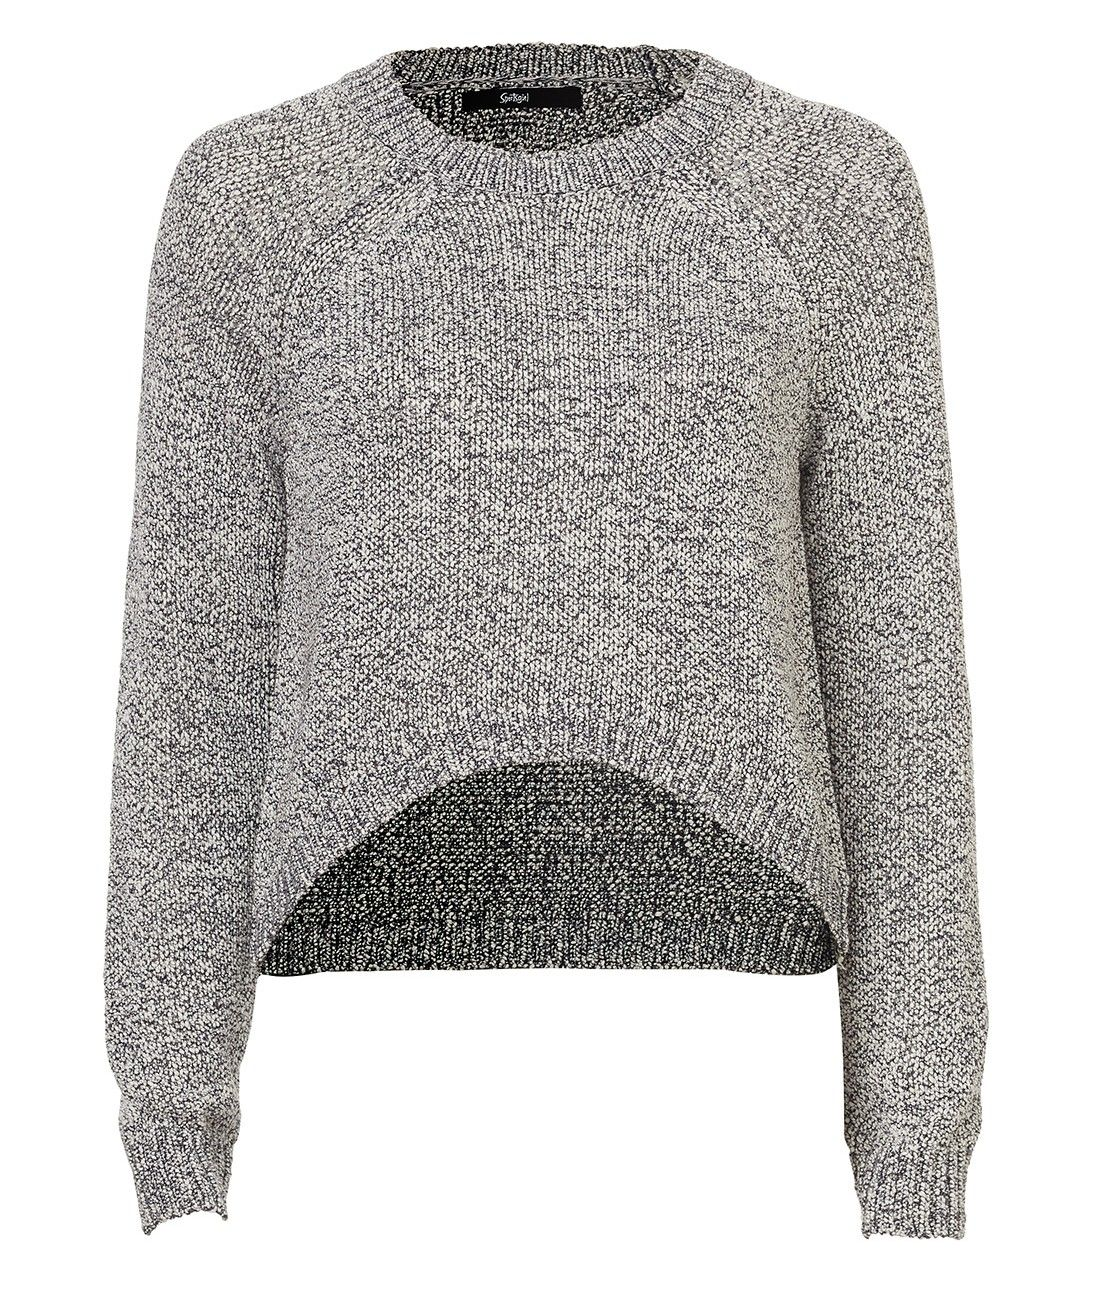 HIGH LOW CROP SWEATER | Clothes | Pinterest | High low, Knitwear ...